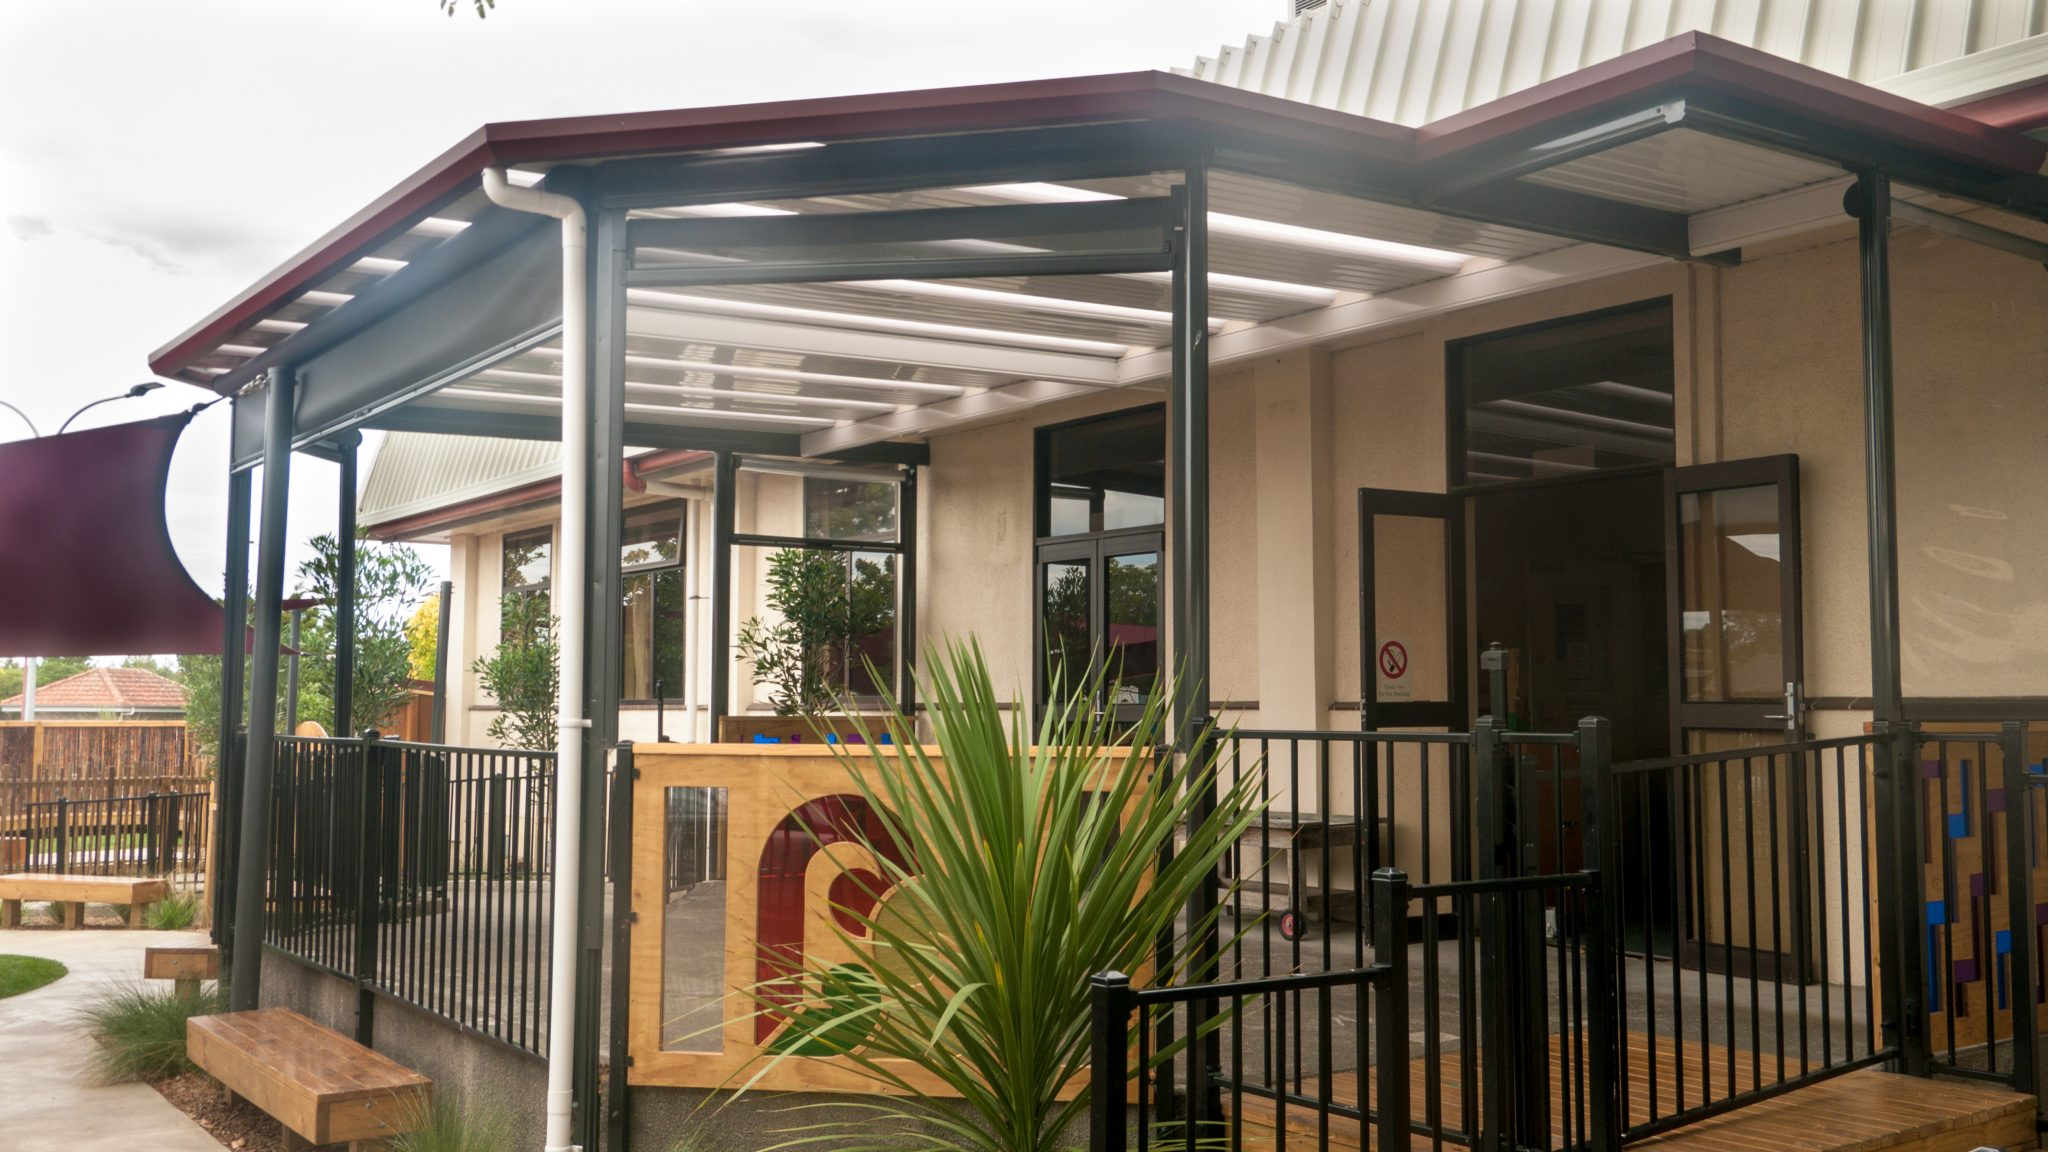 The outdoor area at the hawkes bay hospital featuring a big Stratco Flat Outback roof enclosed with Ziptrack outdoor blinds installed by Suncoast Patios Ltd